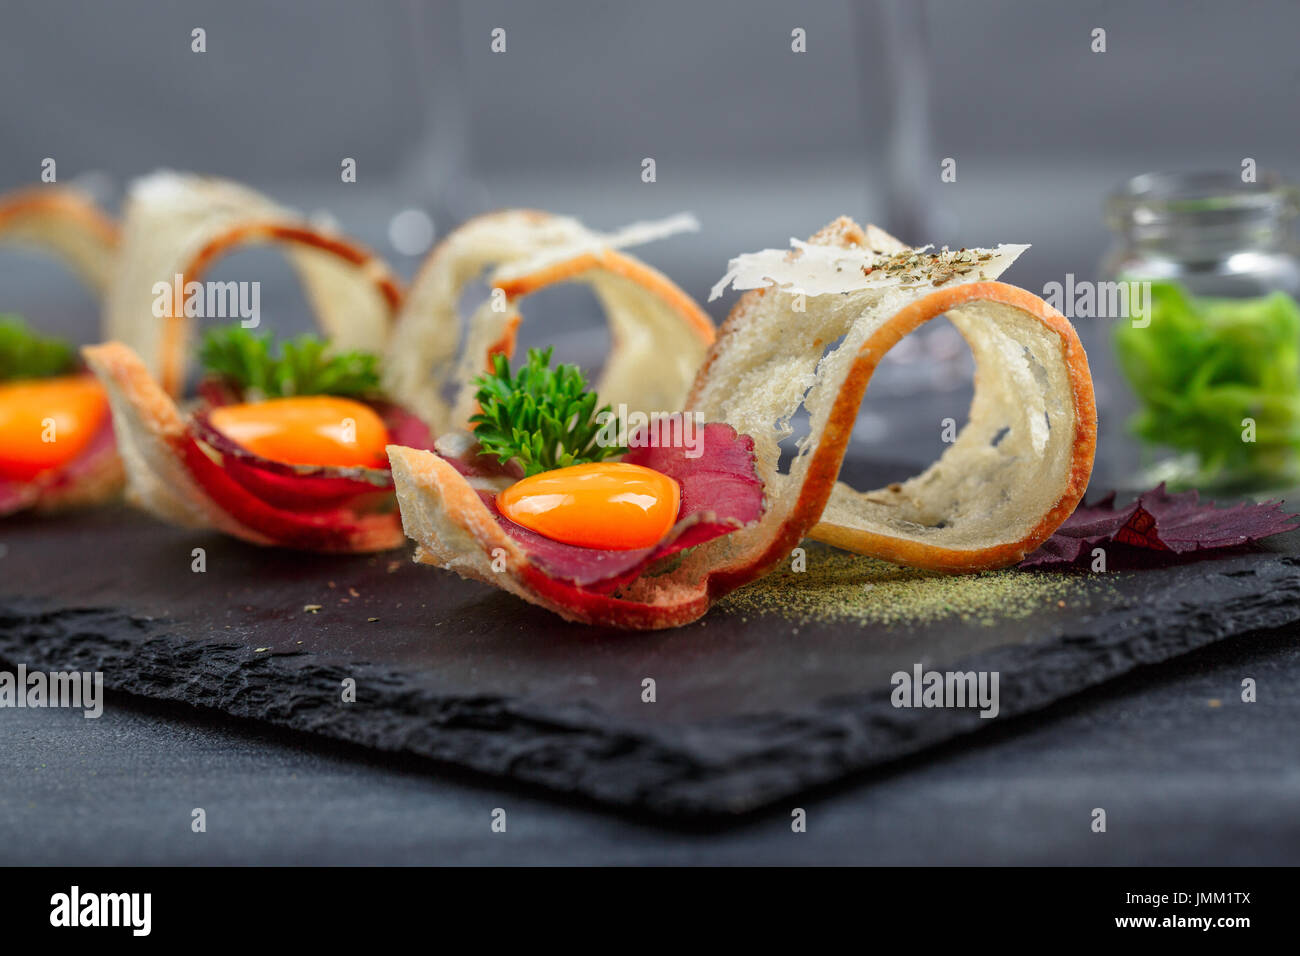 Tapas on Crusty Bread - Selection of Spanish tapas served with a sliced baguette. - Stock Image